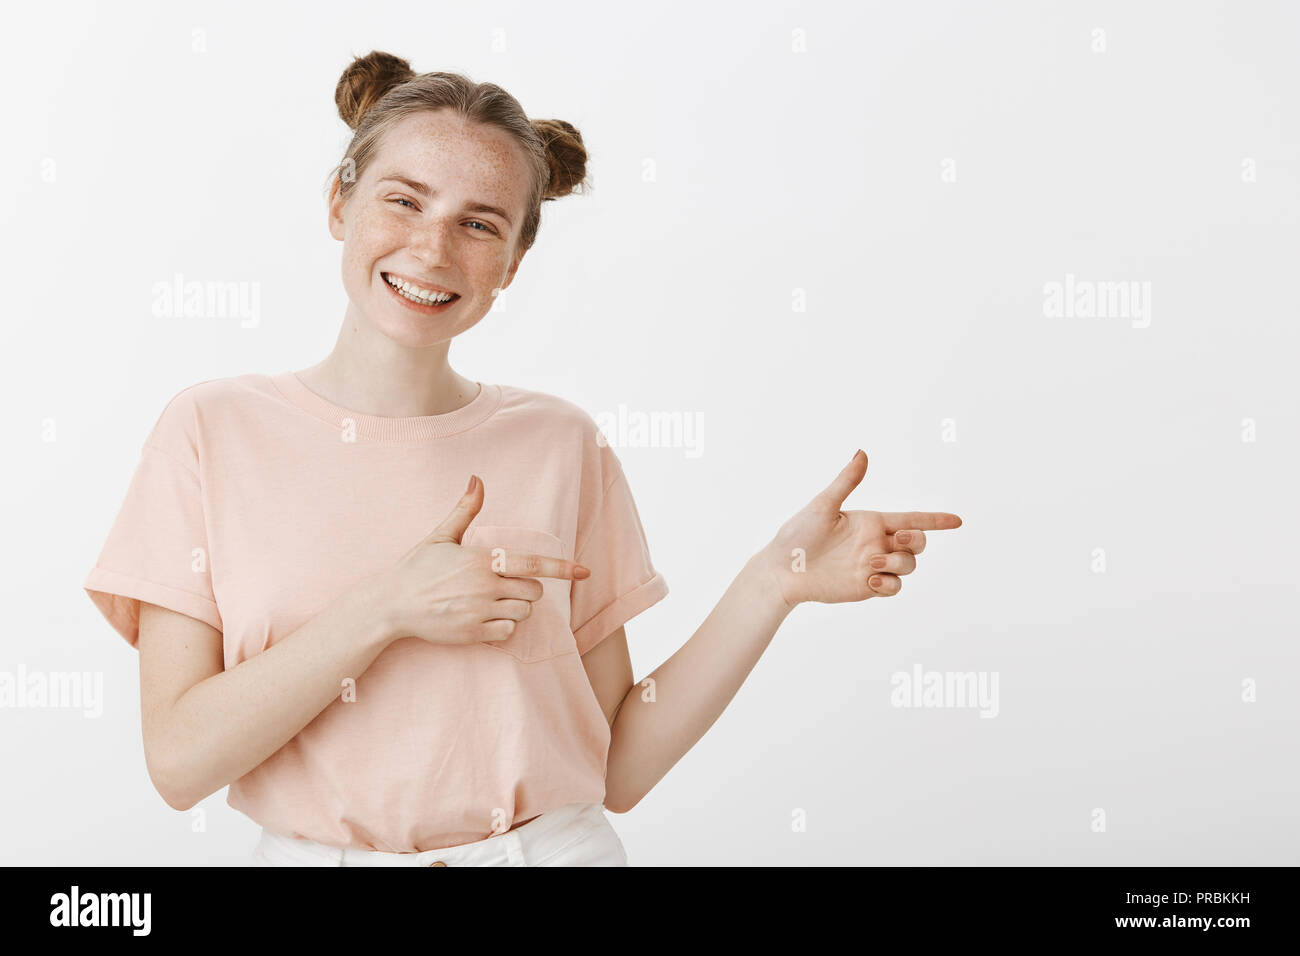 c65974e36 Studio shot of optimistic happy feminine european woman with cute buns  hairstyle and freckles, pointing